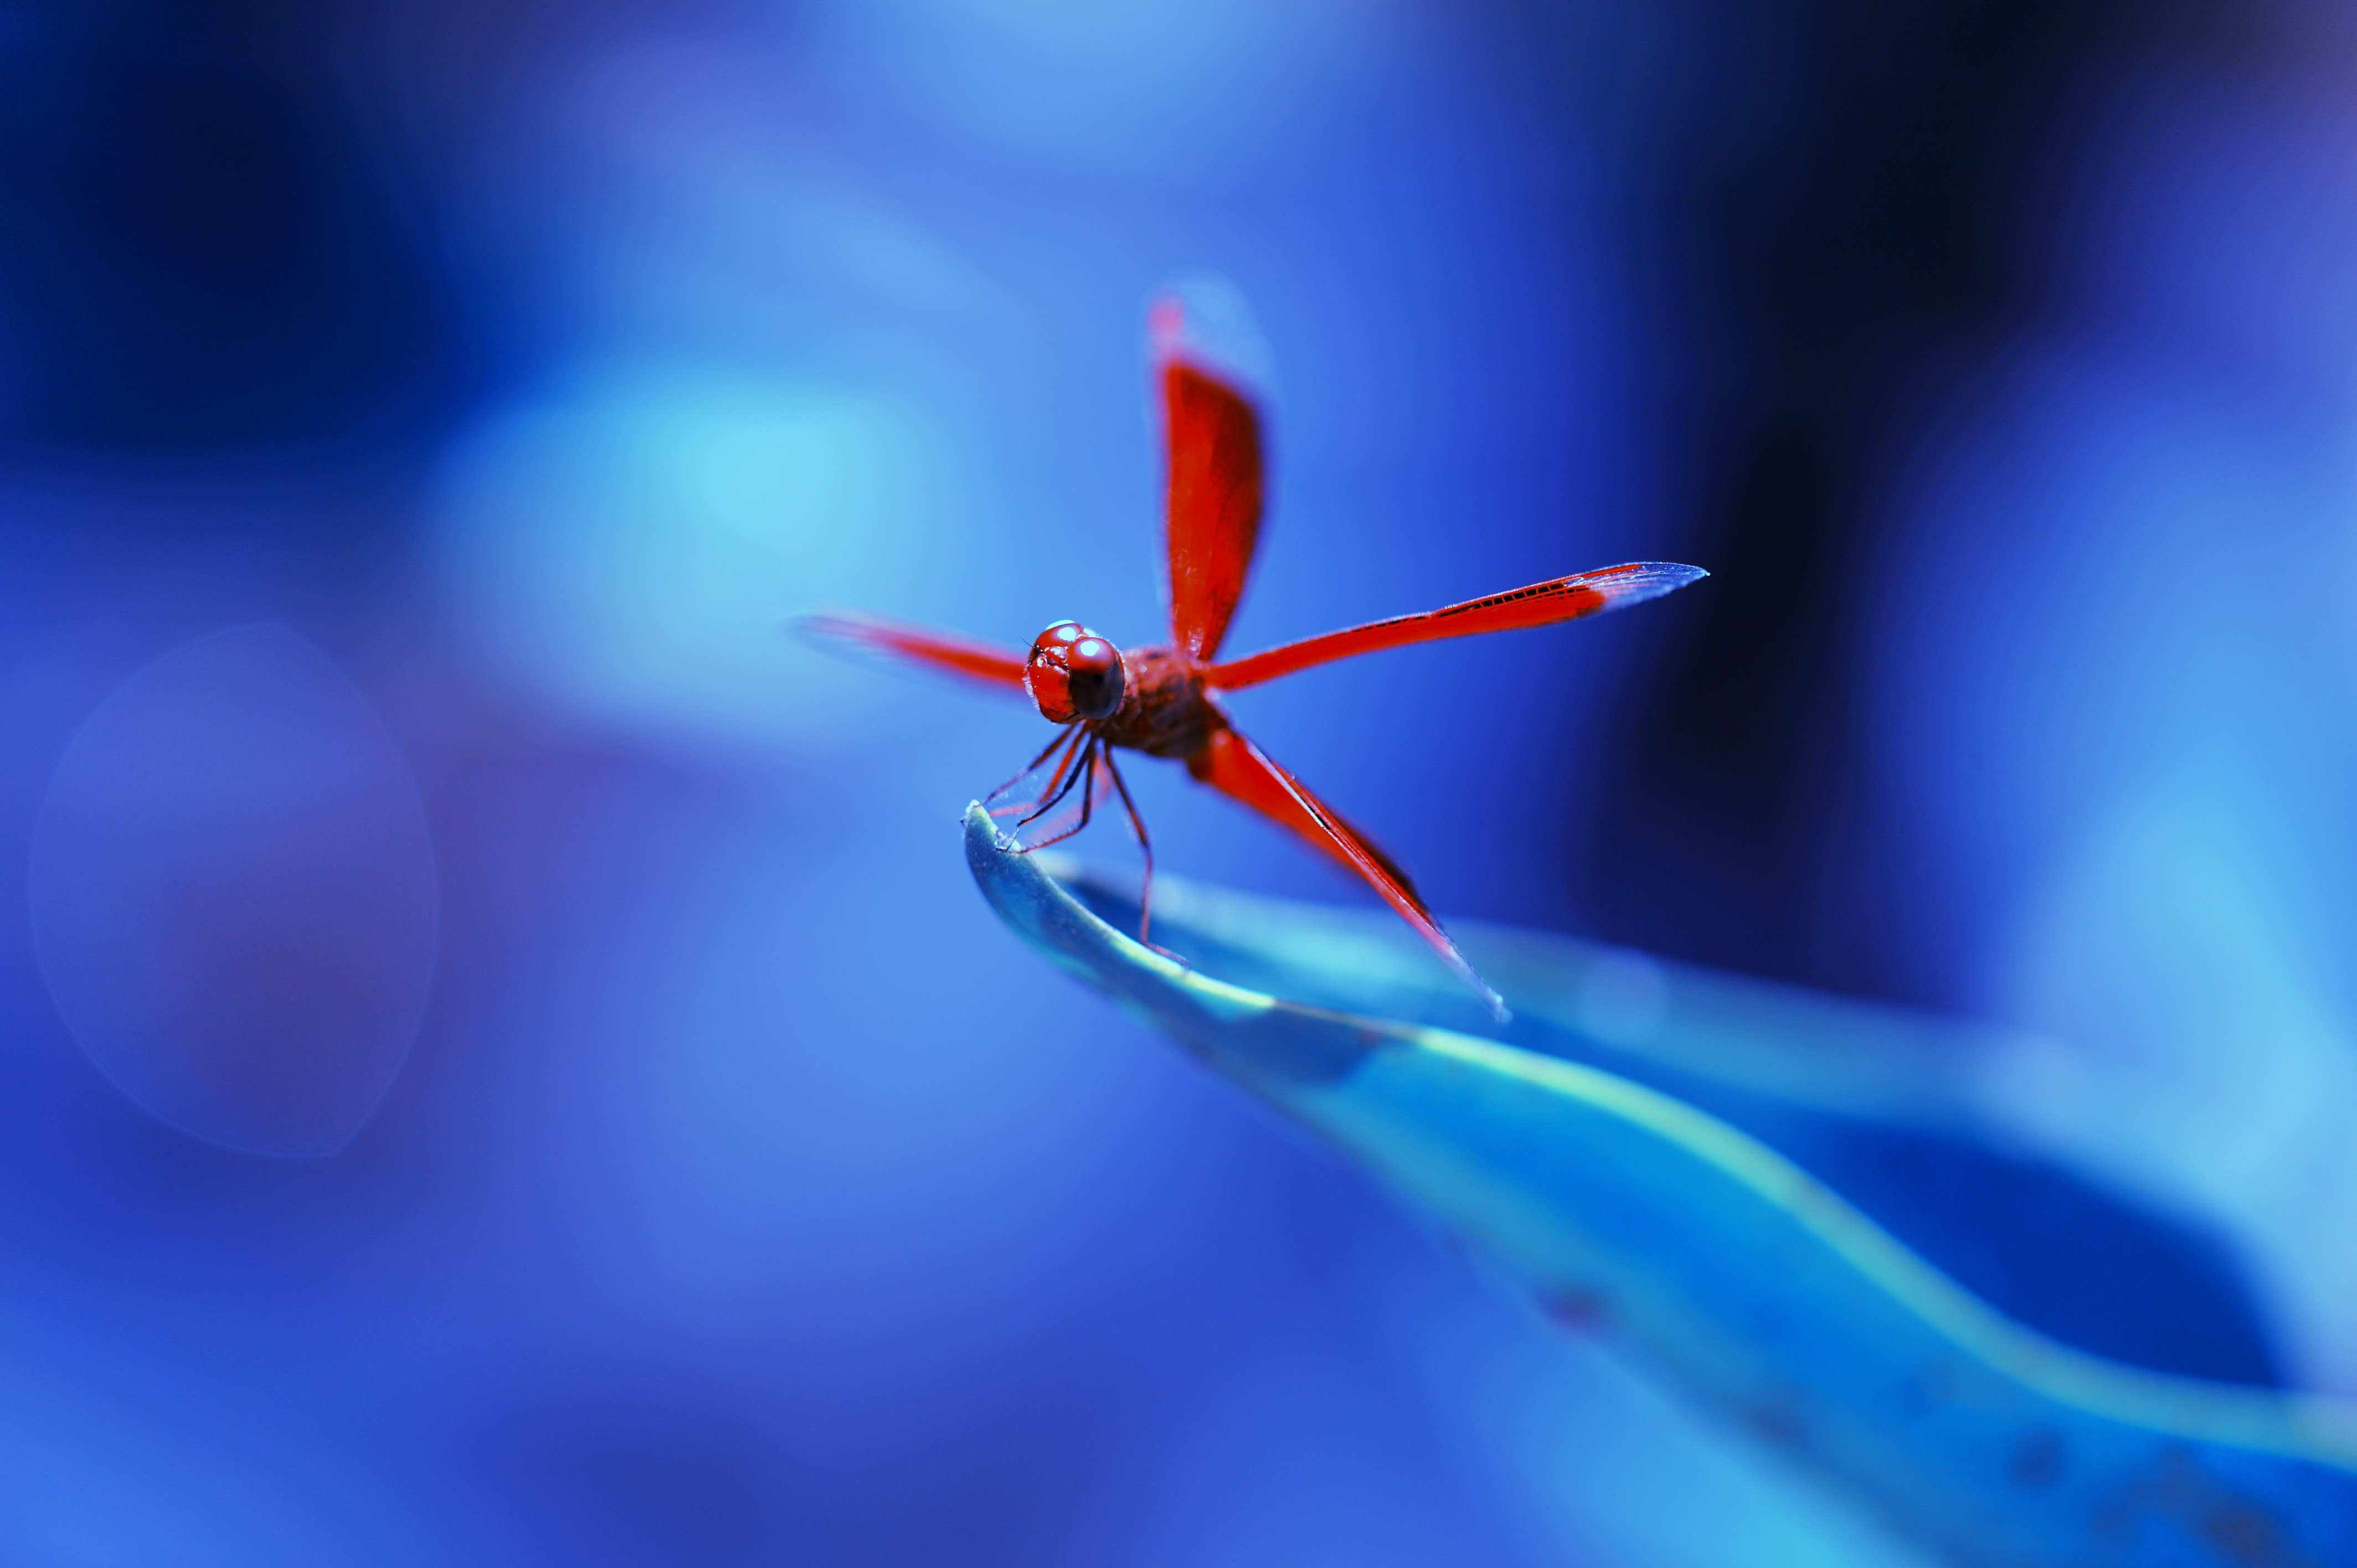 Eyes Of A Dragonfly Nature Dew Cute Macro Hd Wallpaper: Wallpaper Dragonfly, Insects, Blue, Animals #10333